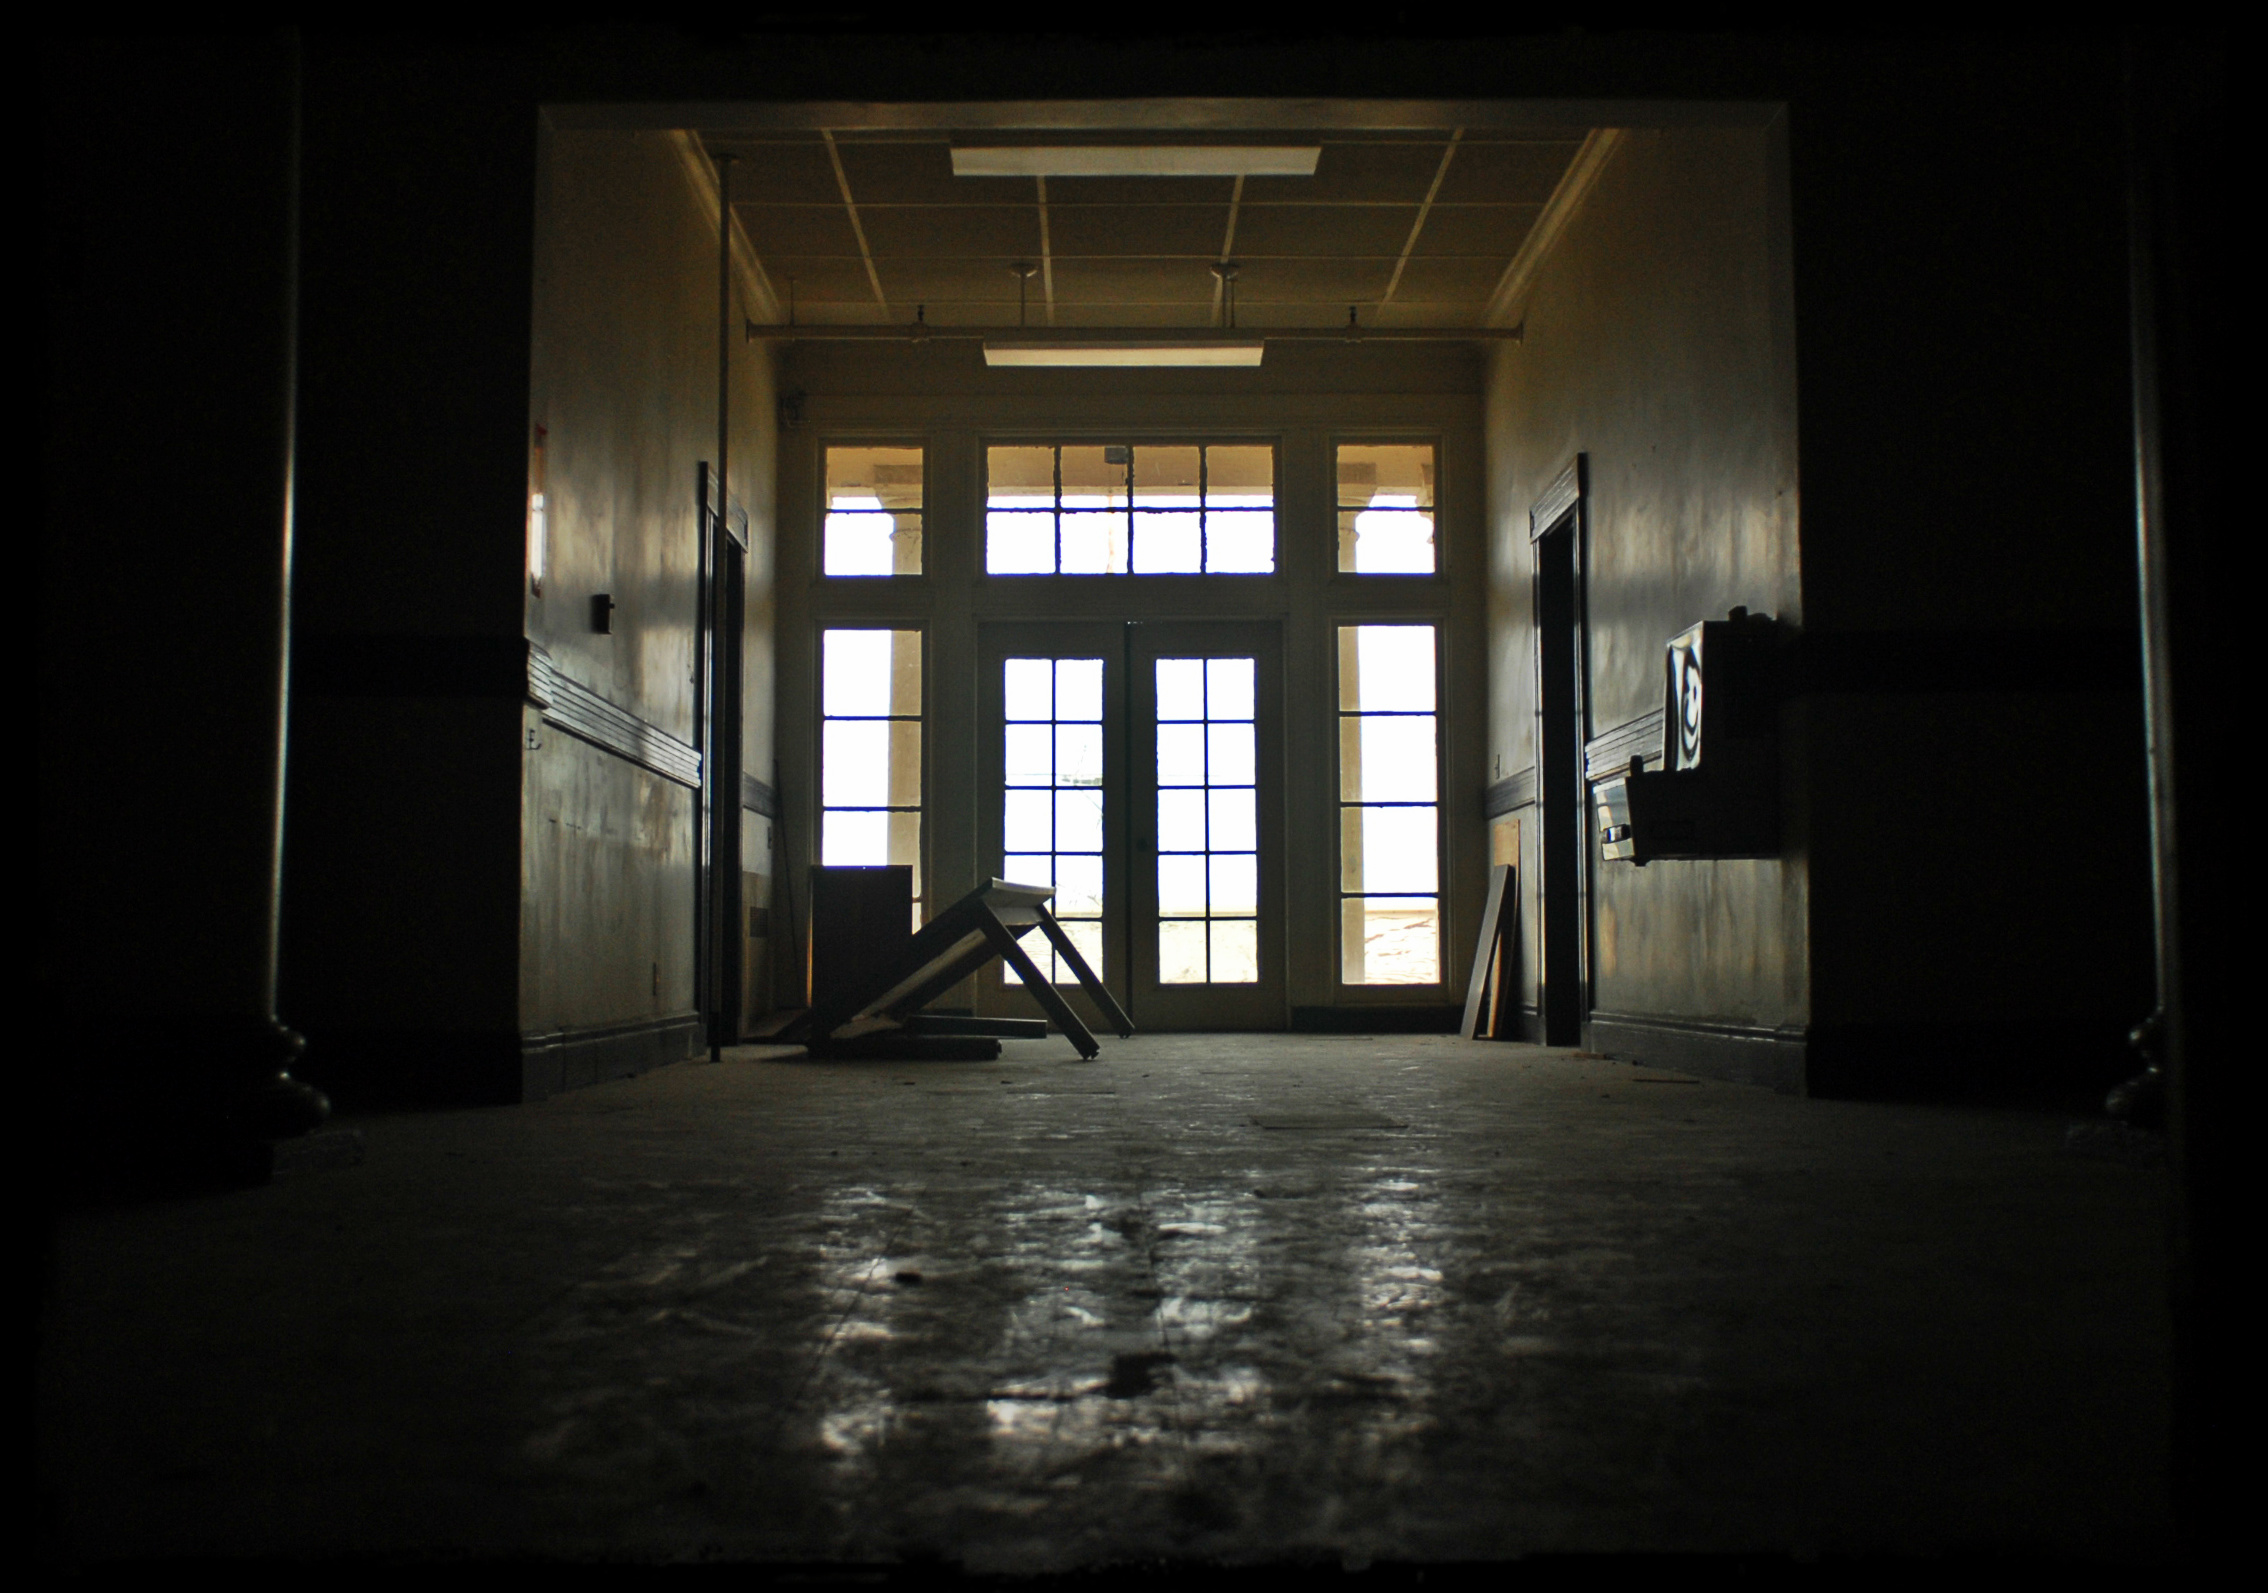 Abandoned Mare Island Naval Hospital built in 1869.